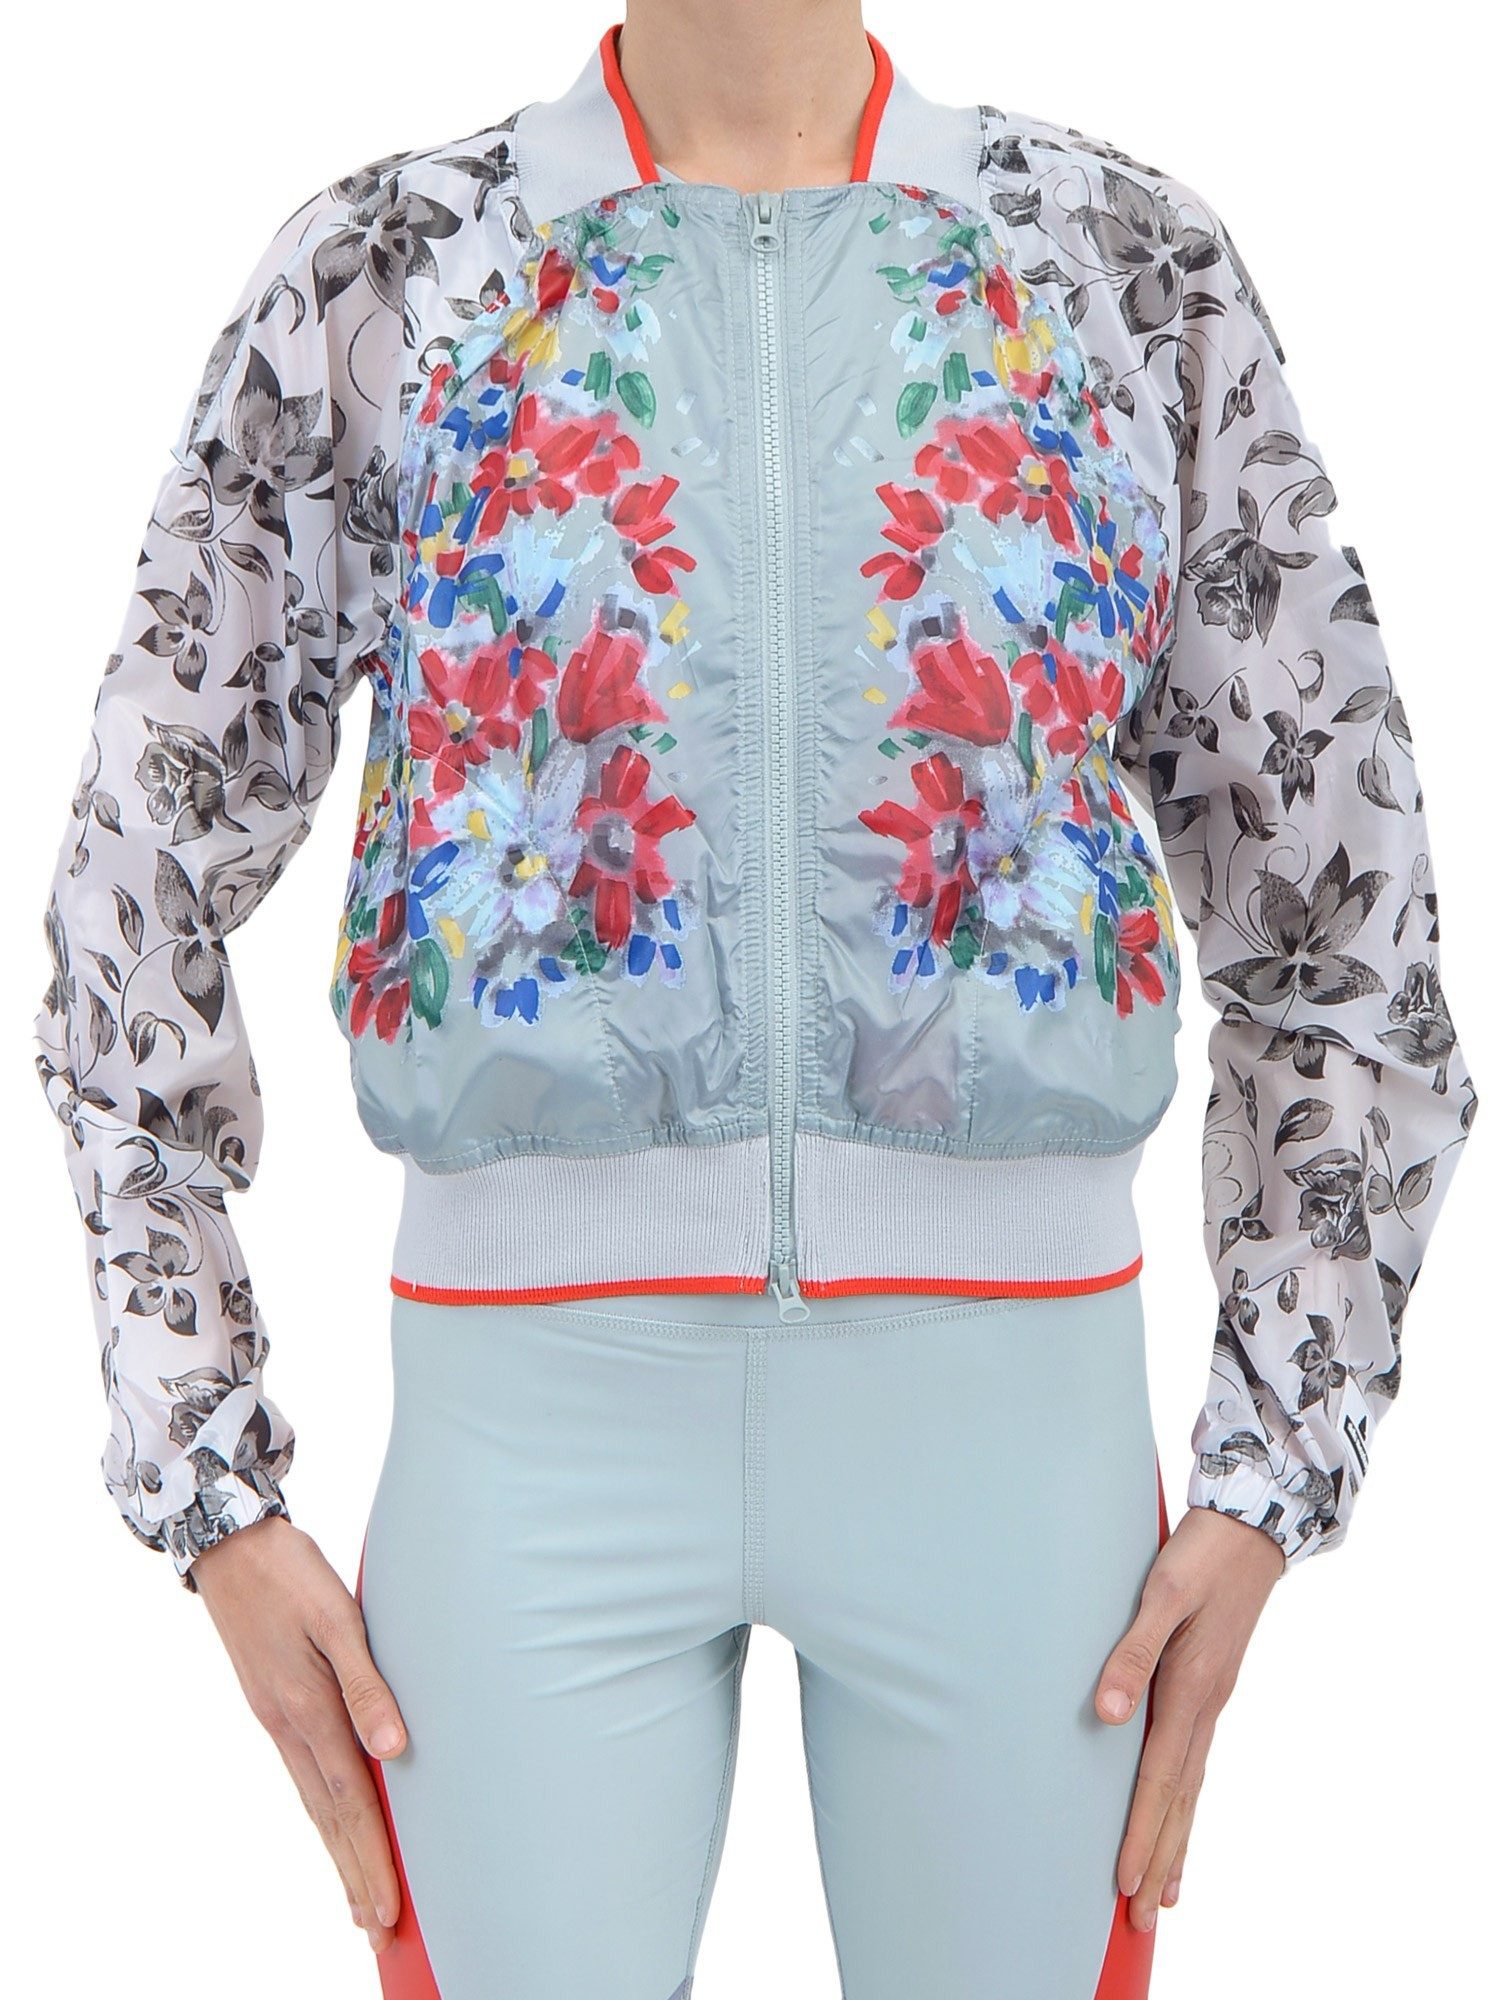 Stella McCartney Jackets This Stylight collection of Stella McCartney jackets features her love of playful designs, that are also practical and comfortable. Warm and waterproof styles protect against the elements, while classic peacoats with multiple pockets dress .